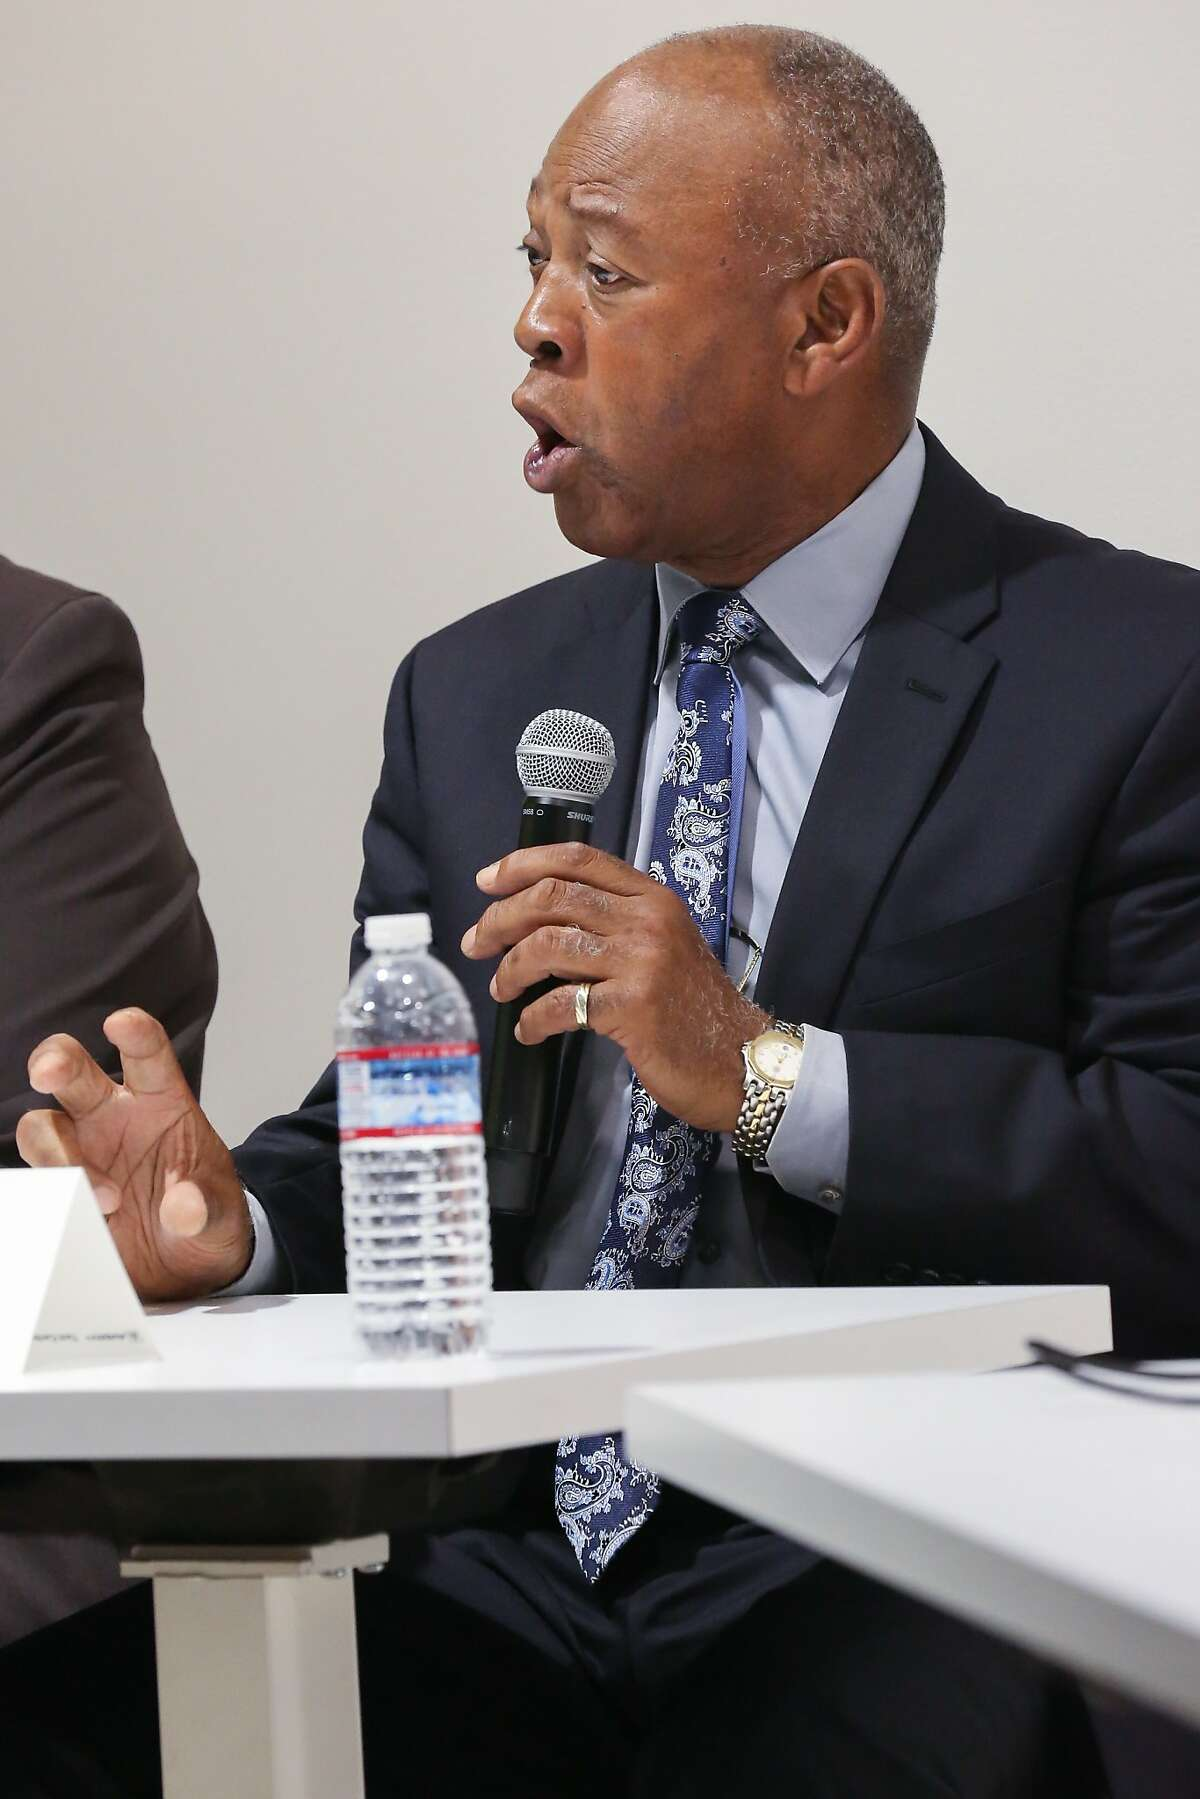 Sheriff candidate John Robinson responds to a question during the debate against current sheriff Ross Mirkarimi and candidate Vicki Hennessy at Zendesk on Tuesday, August 11, 2015 in San Francisco, Calif.